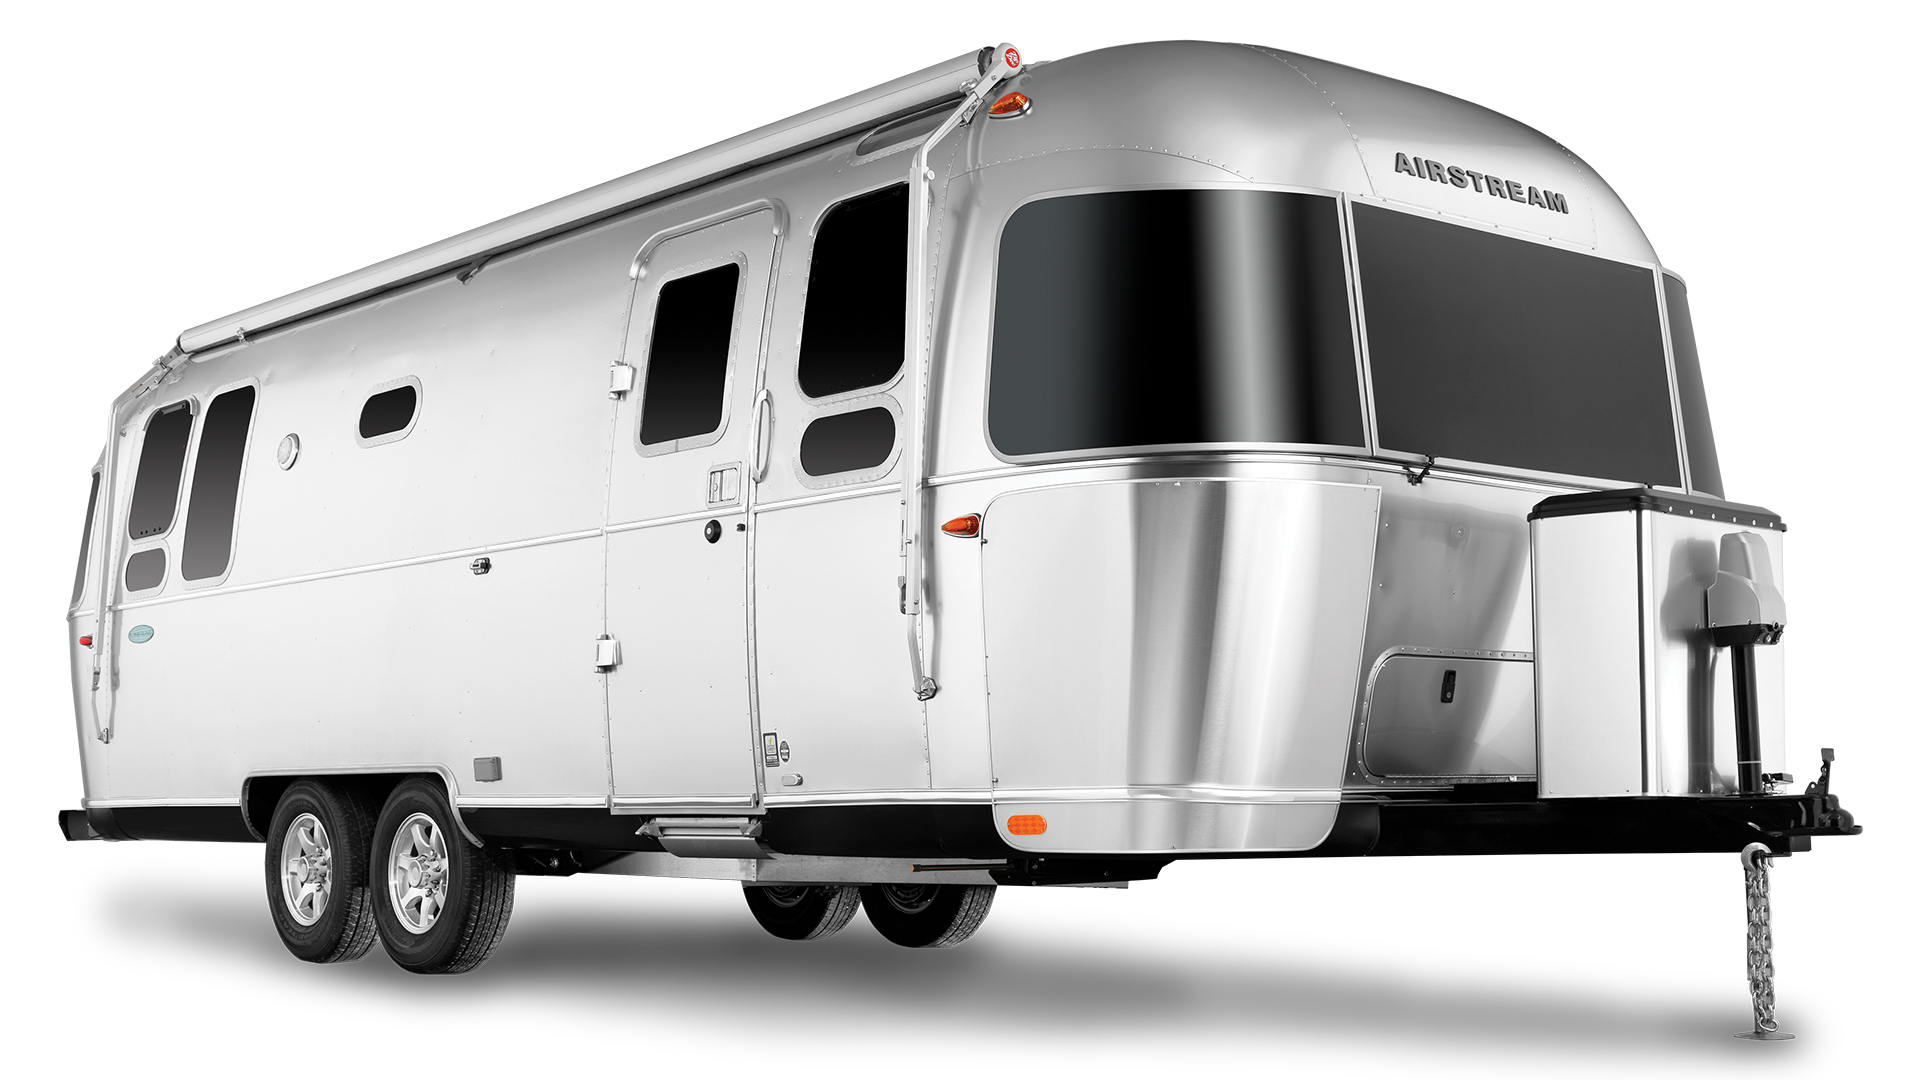 Airstream-Flying-Cloud-26RB-Travel-Trailer-Exterior-Bug